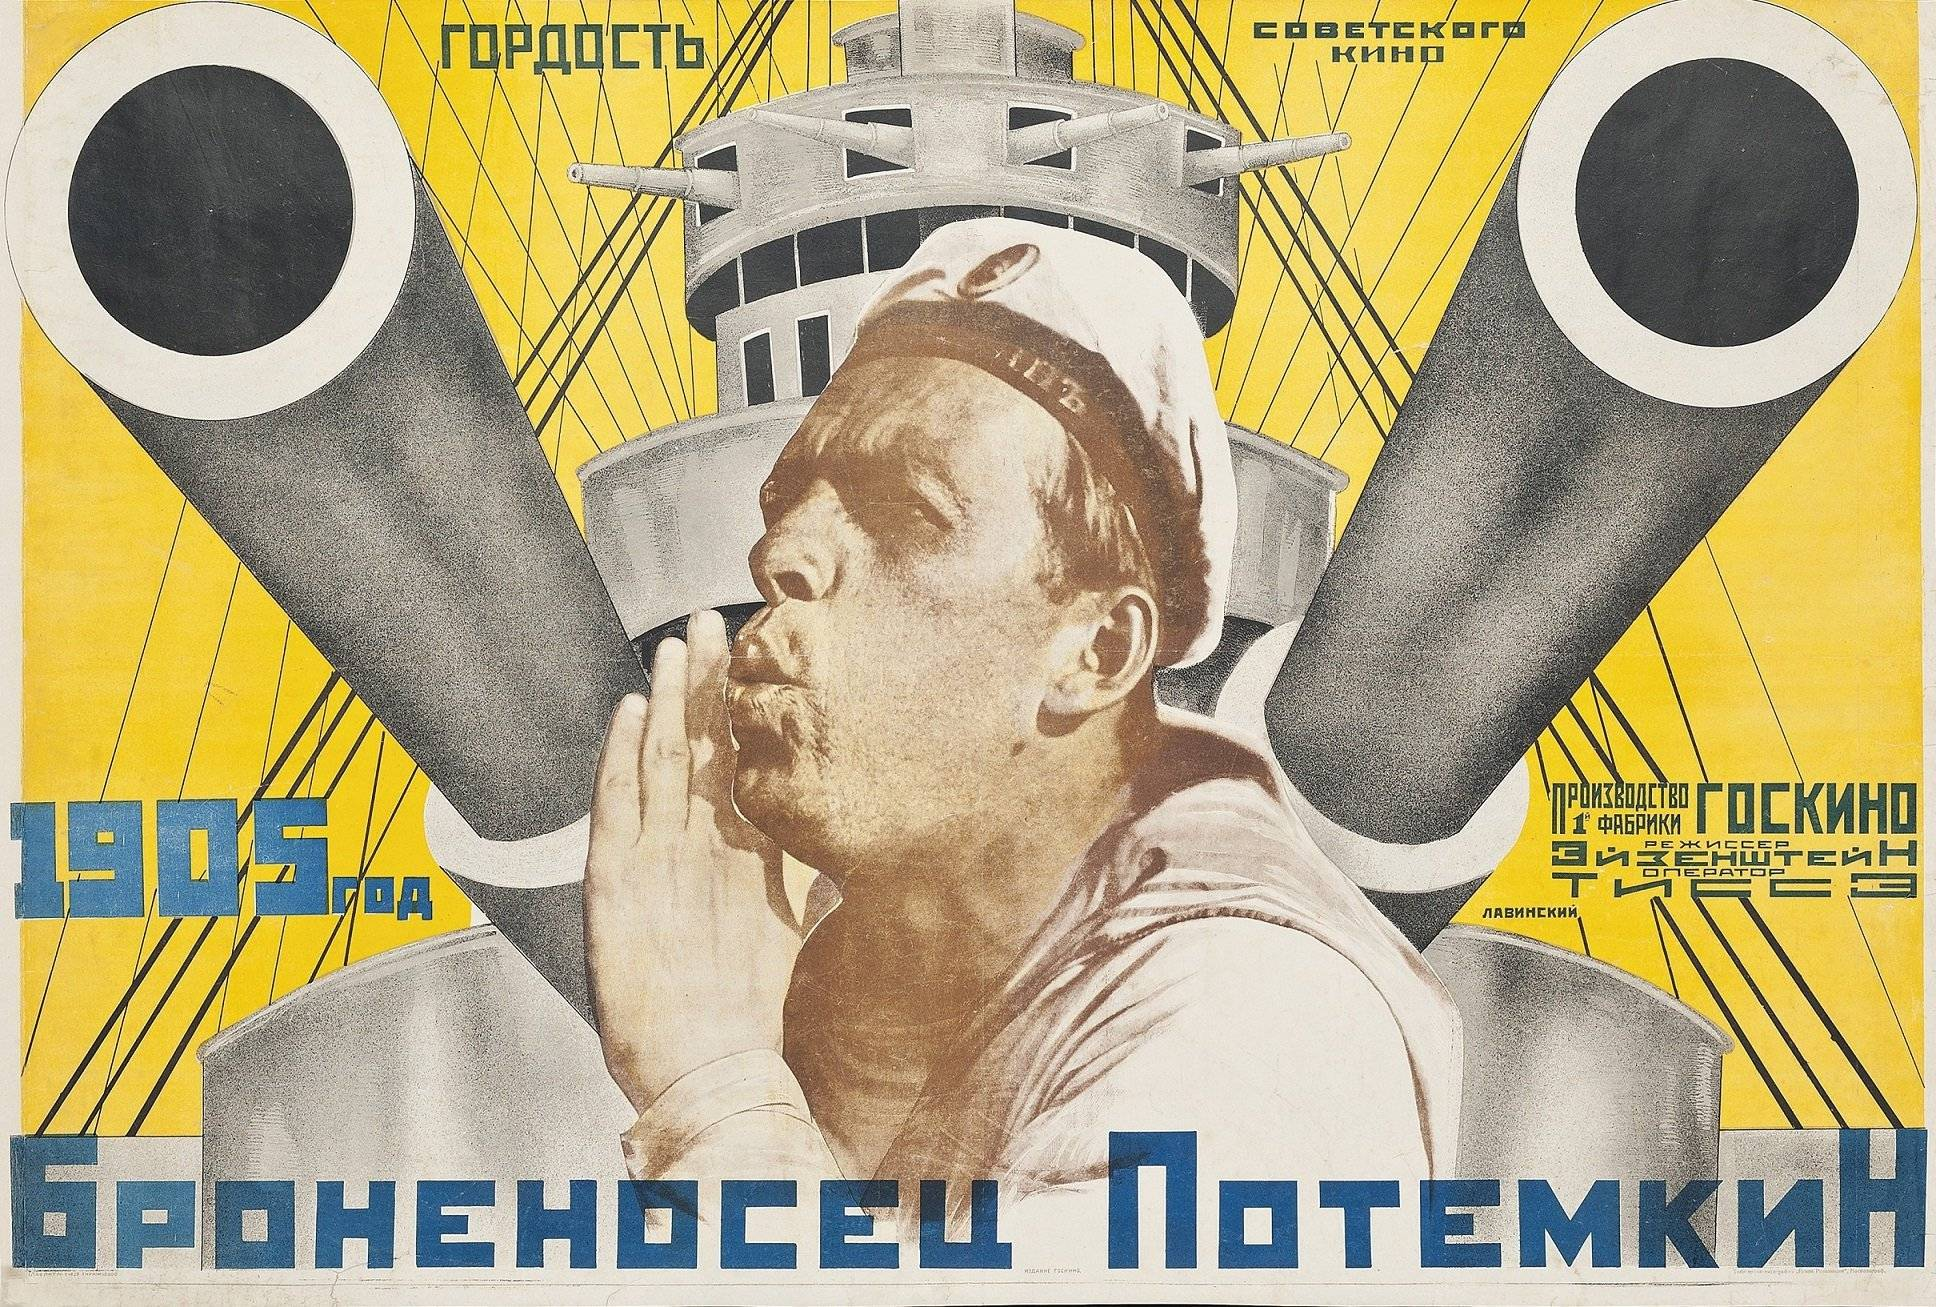 Vintage Russian Cinema Posters Auction at Christie's